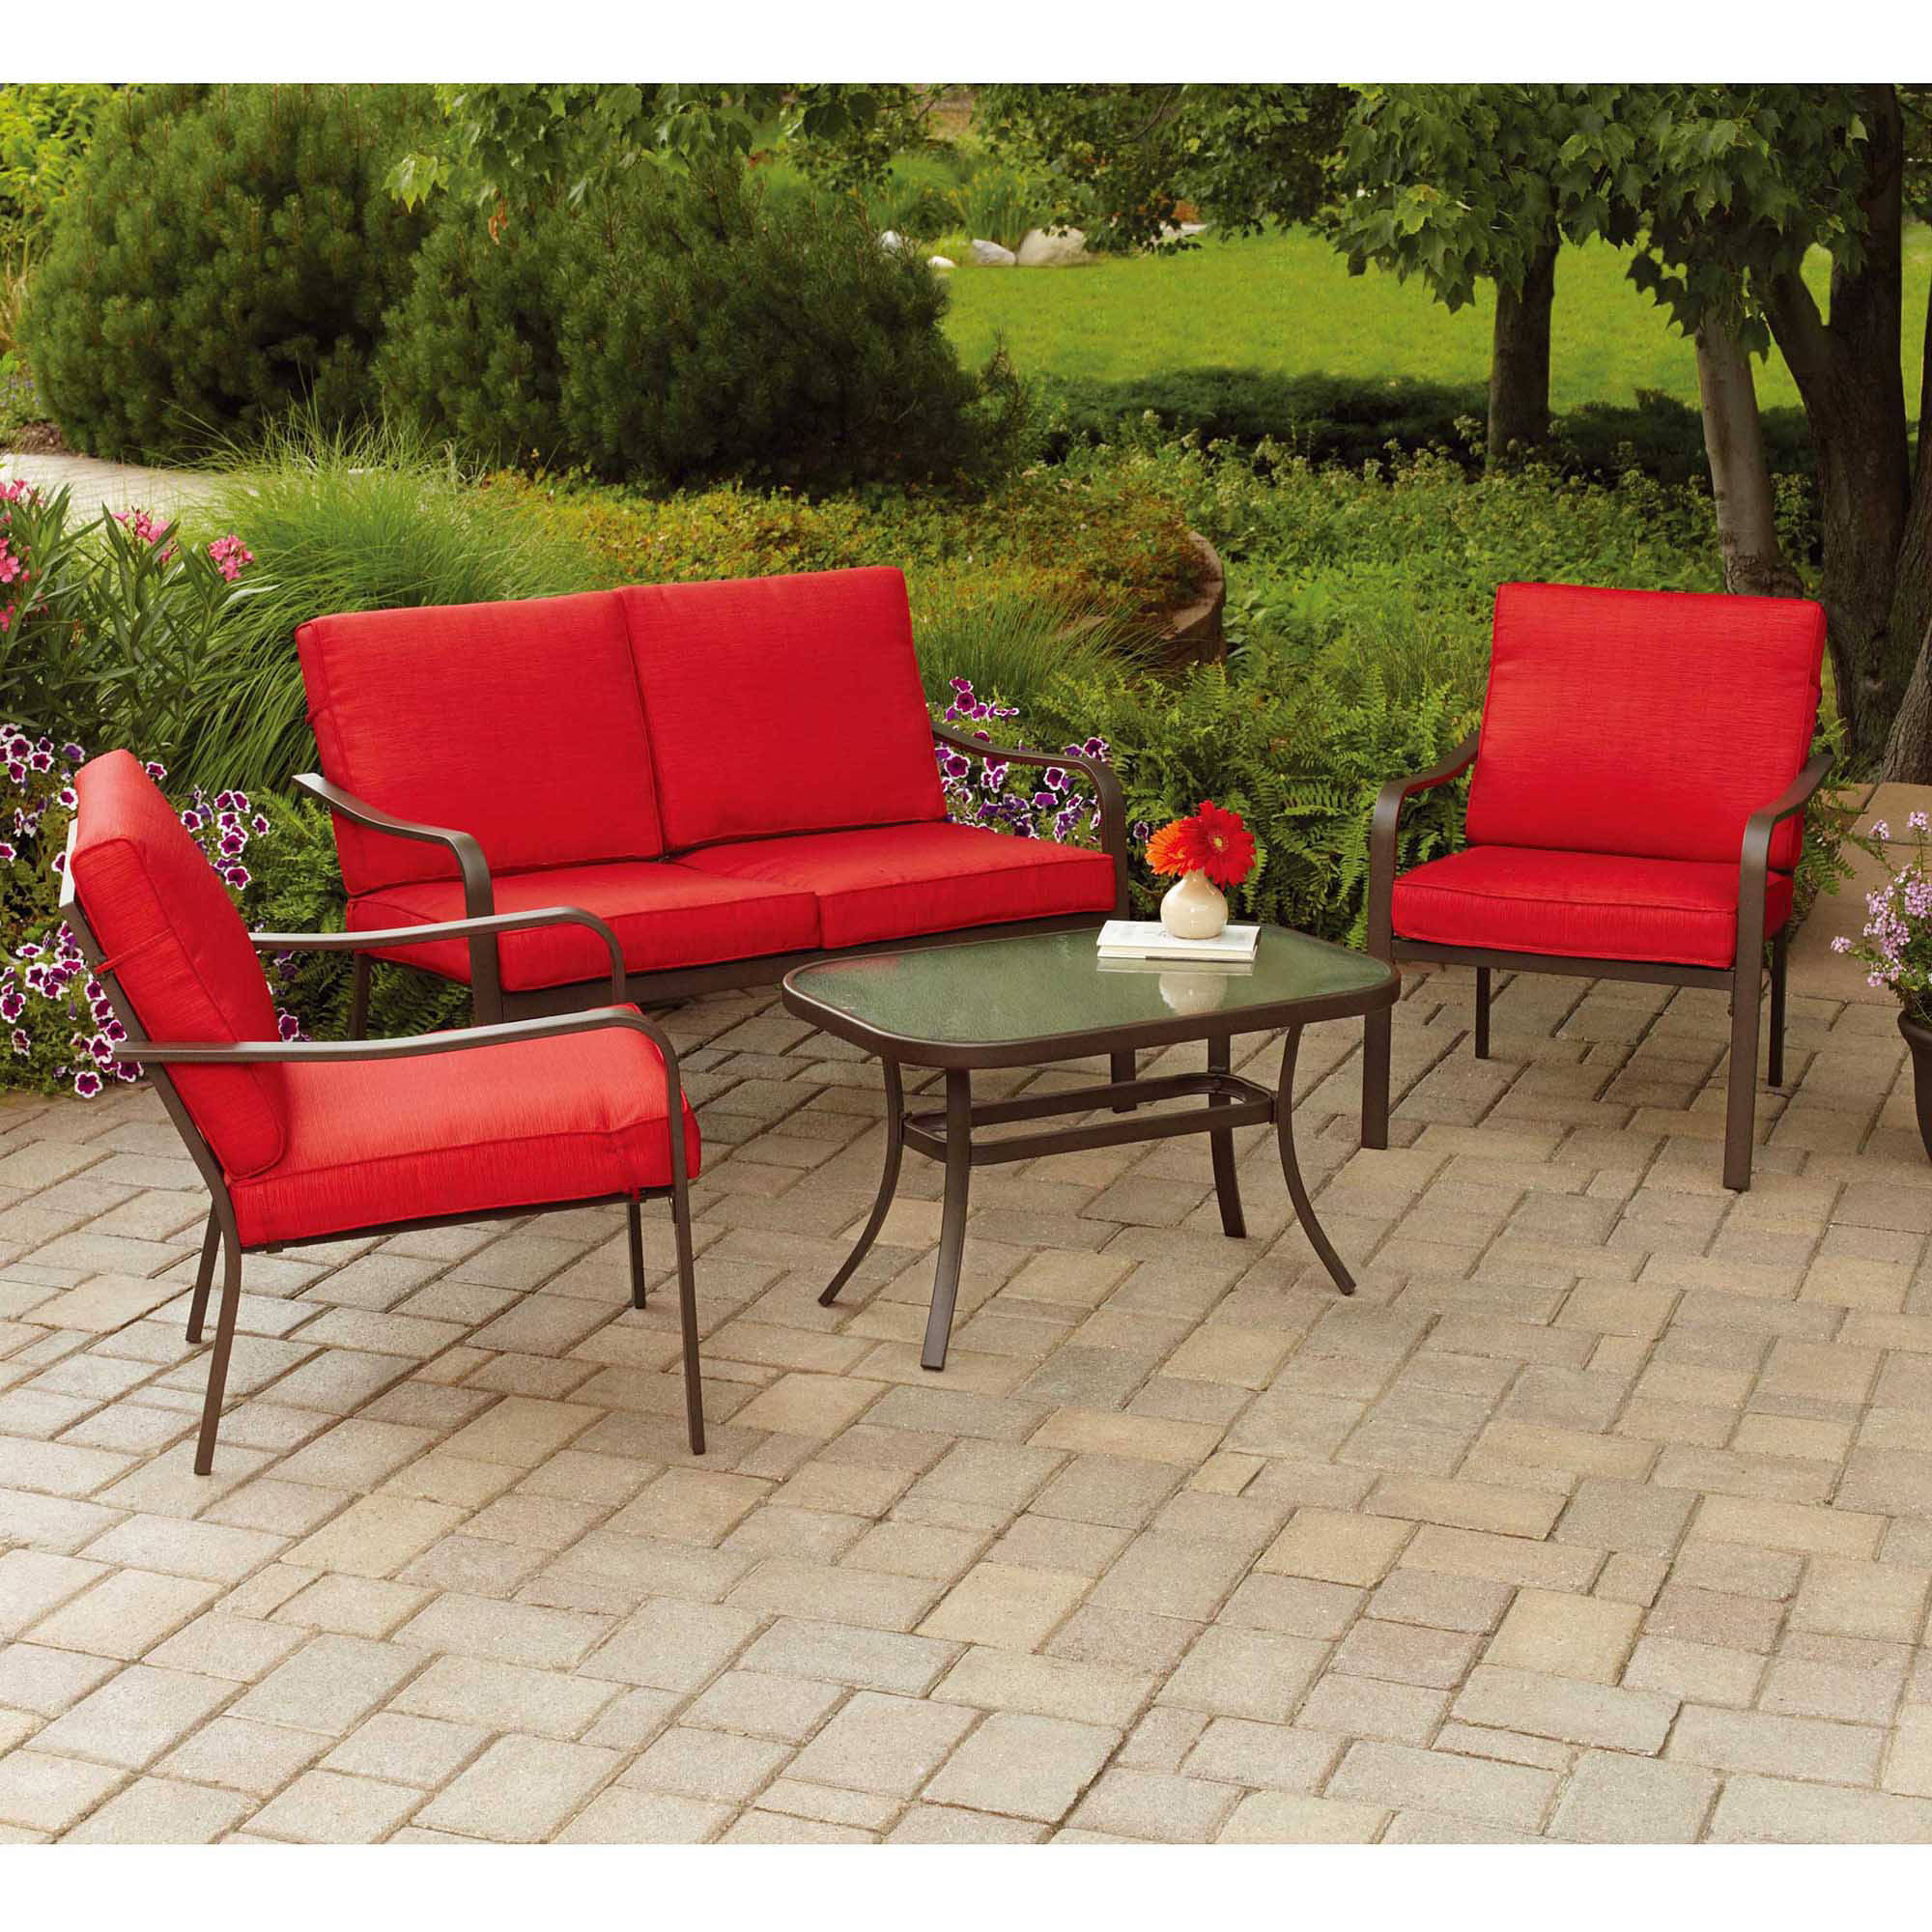 Details About Mainstays Stanton Cushioned 4 Piece Patio Conversation Set Seats